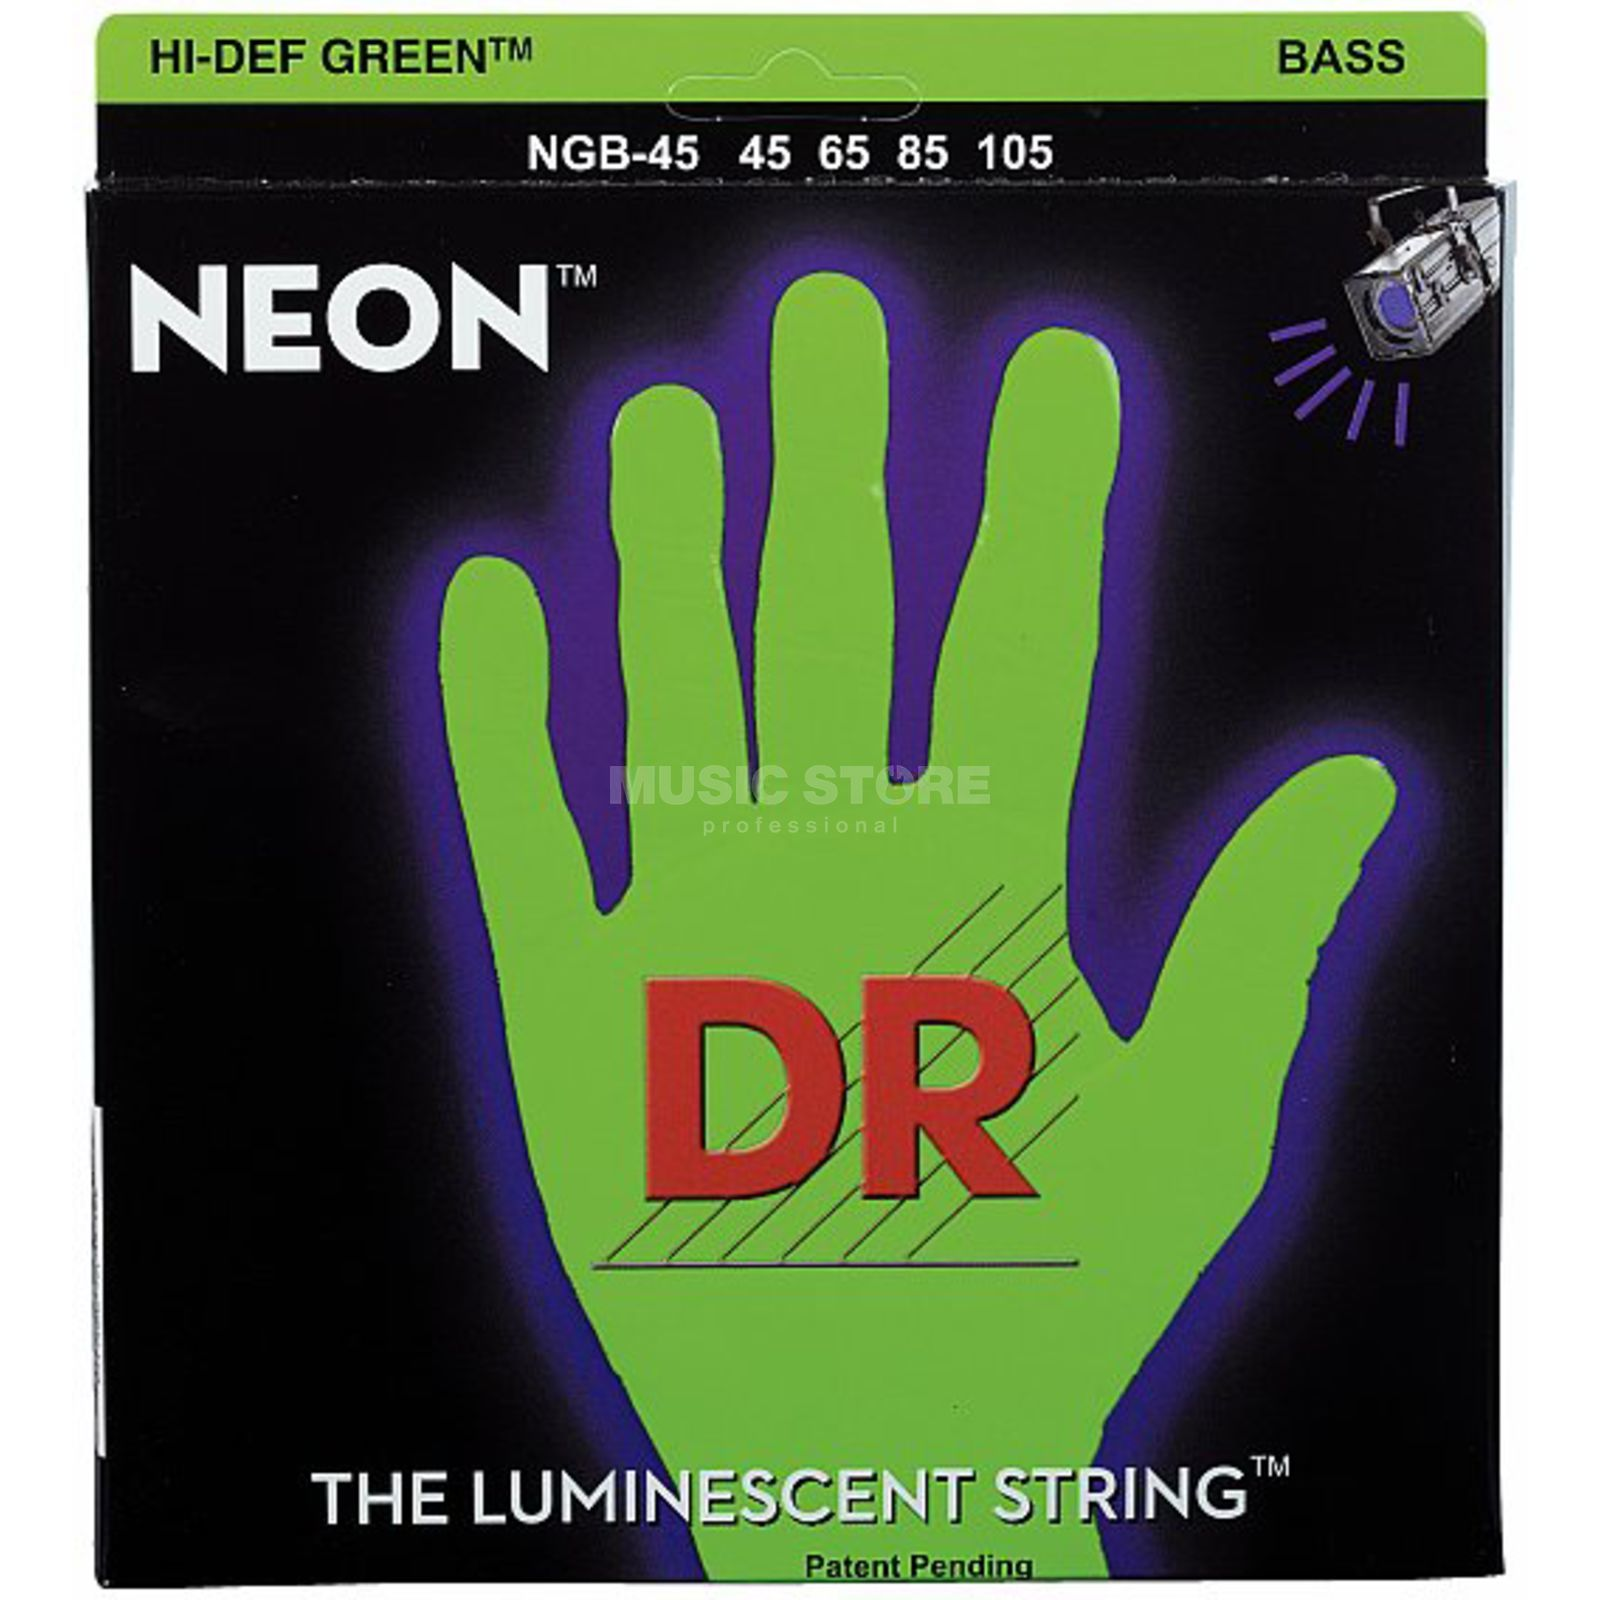 DR 4 Bass Strings 45-105 Hi-Def Neon Green Neon NGB-45 Product Image